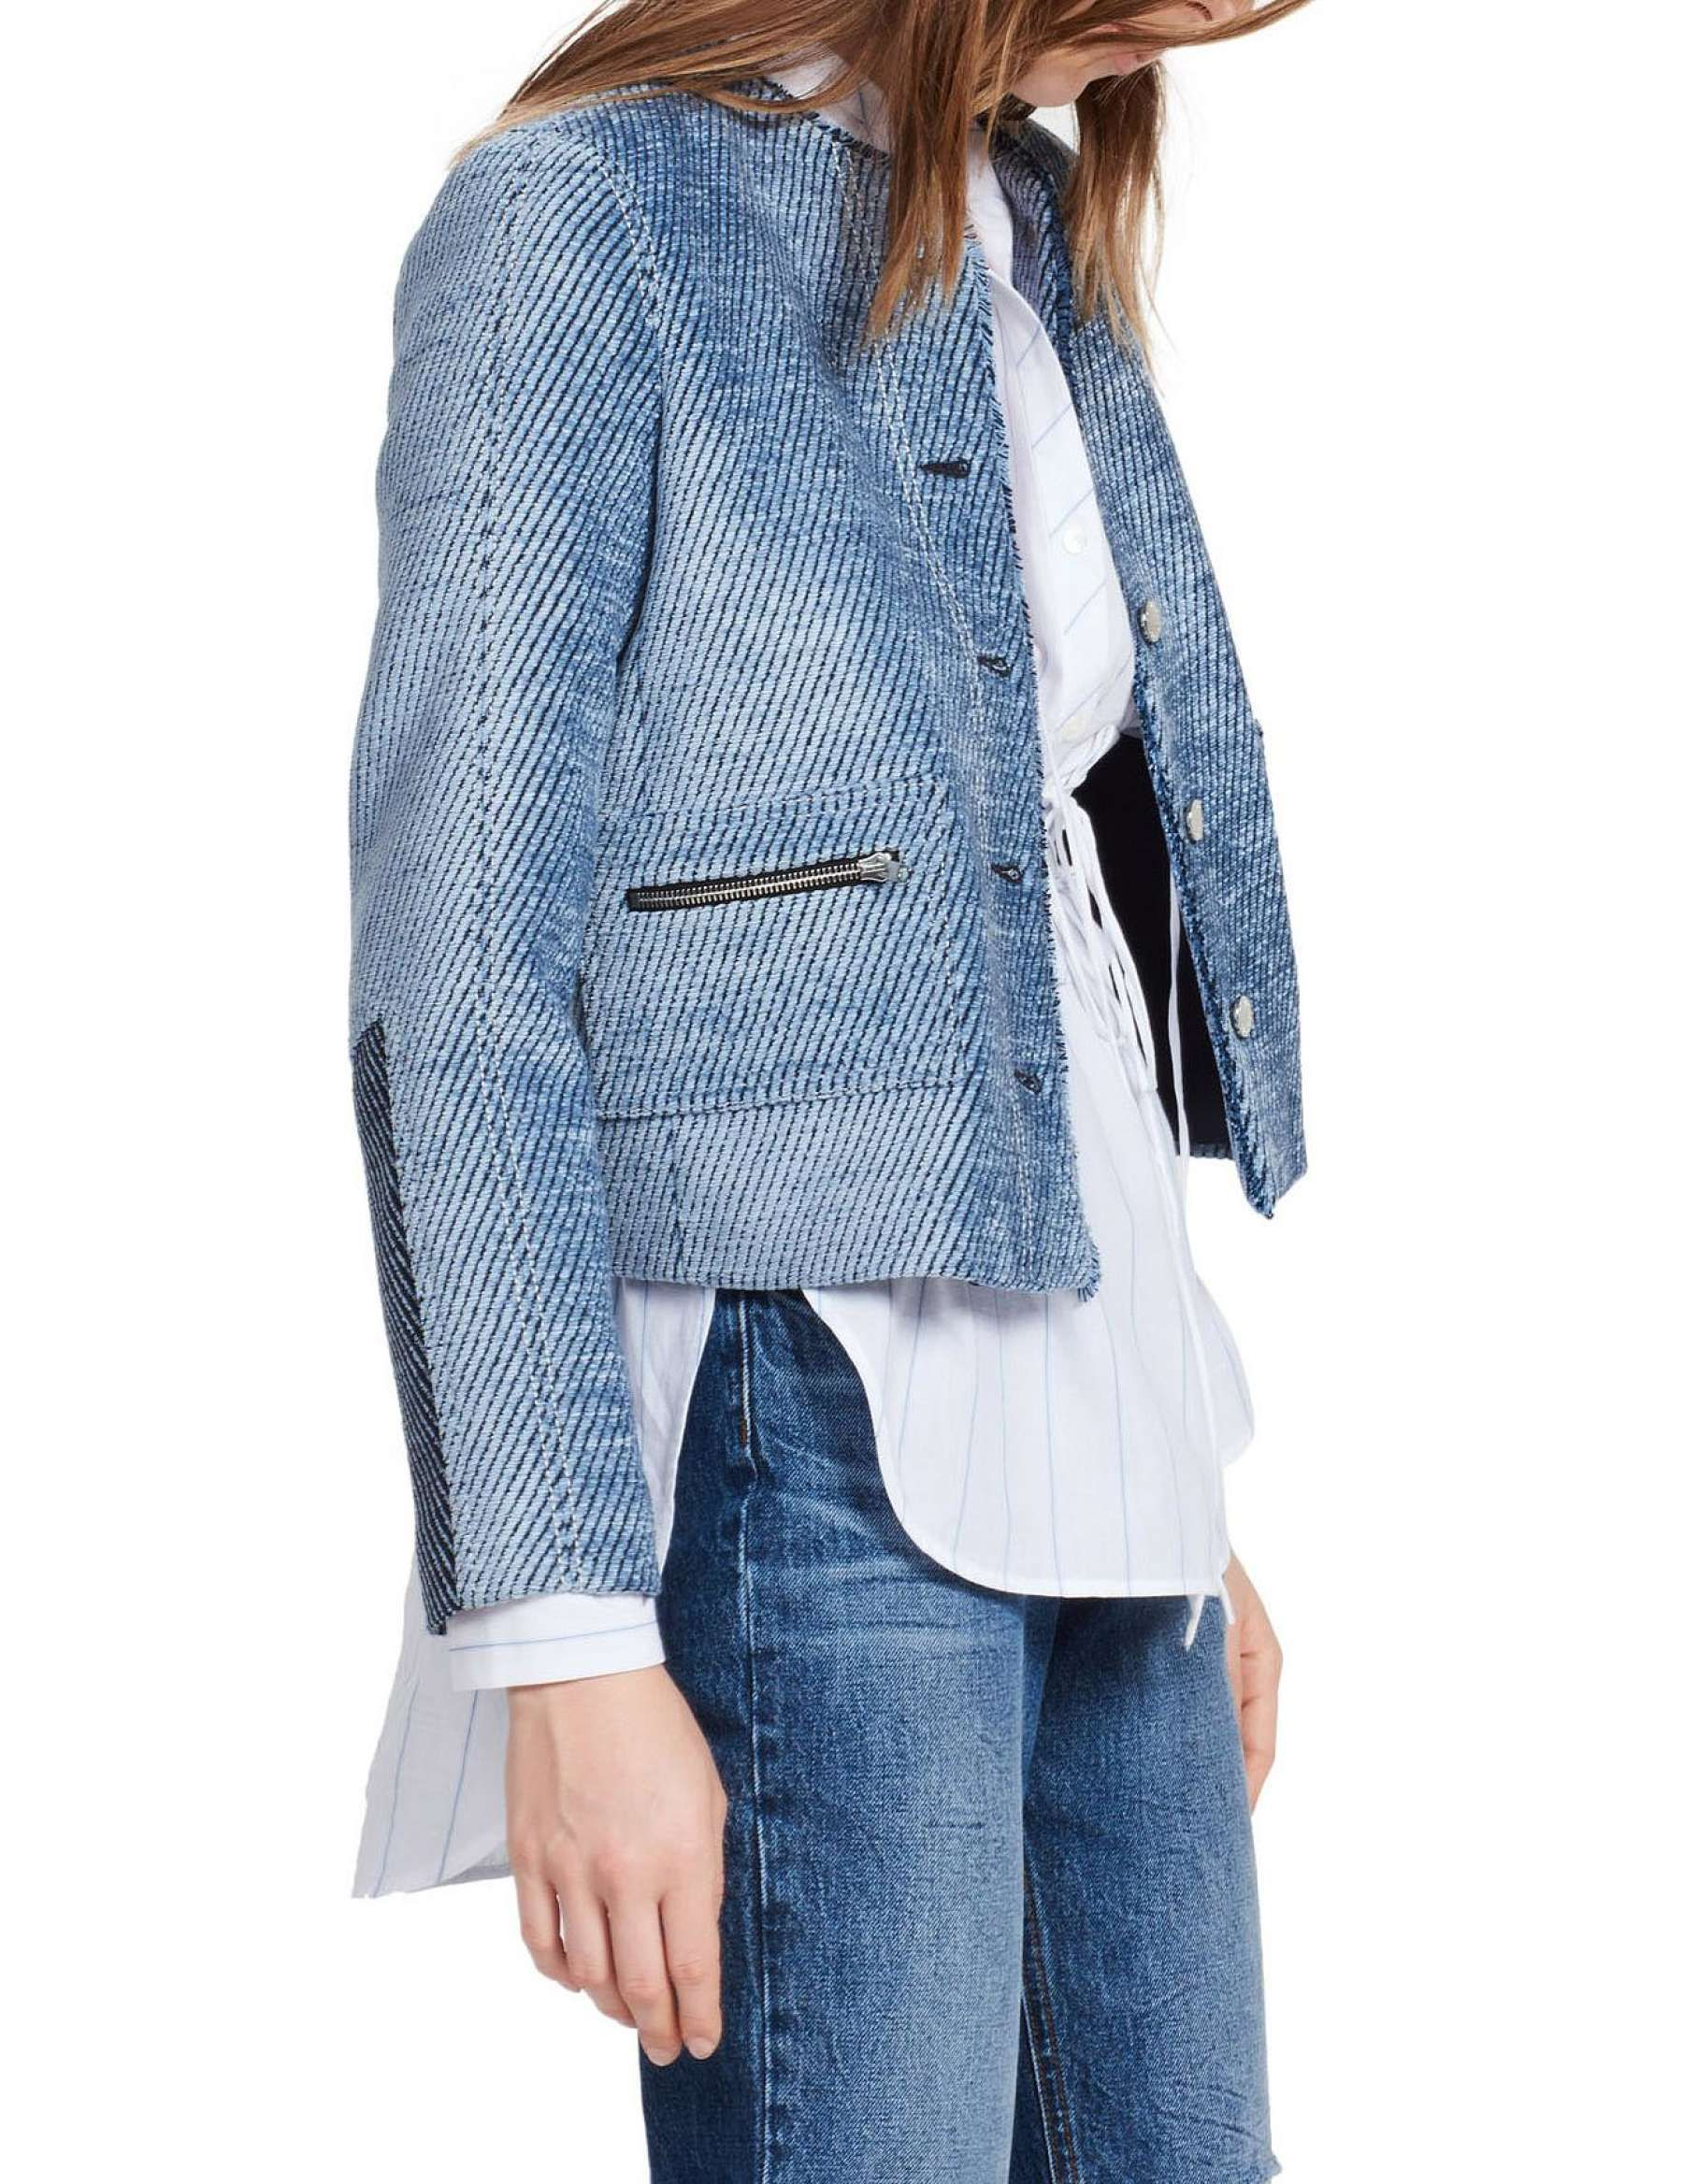 Sandro Paris, Annelie Jacket, Denim (With images